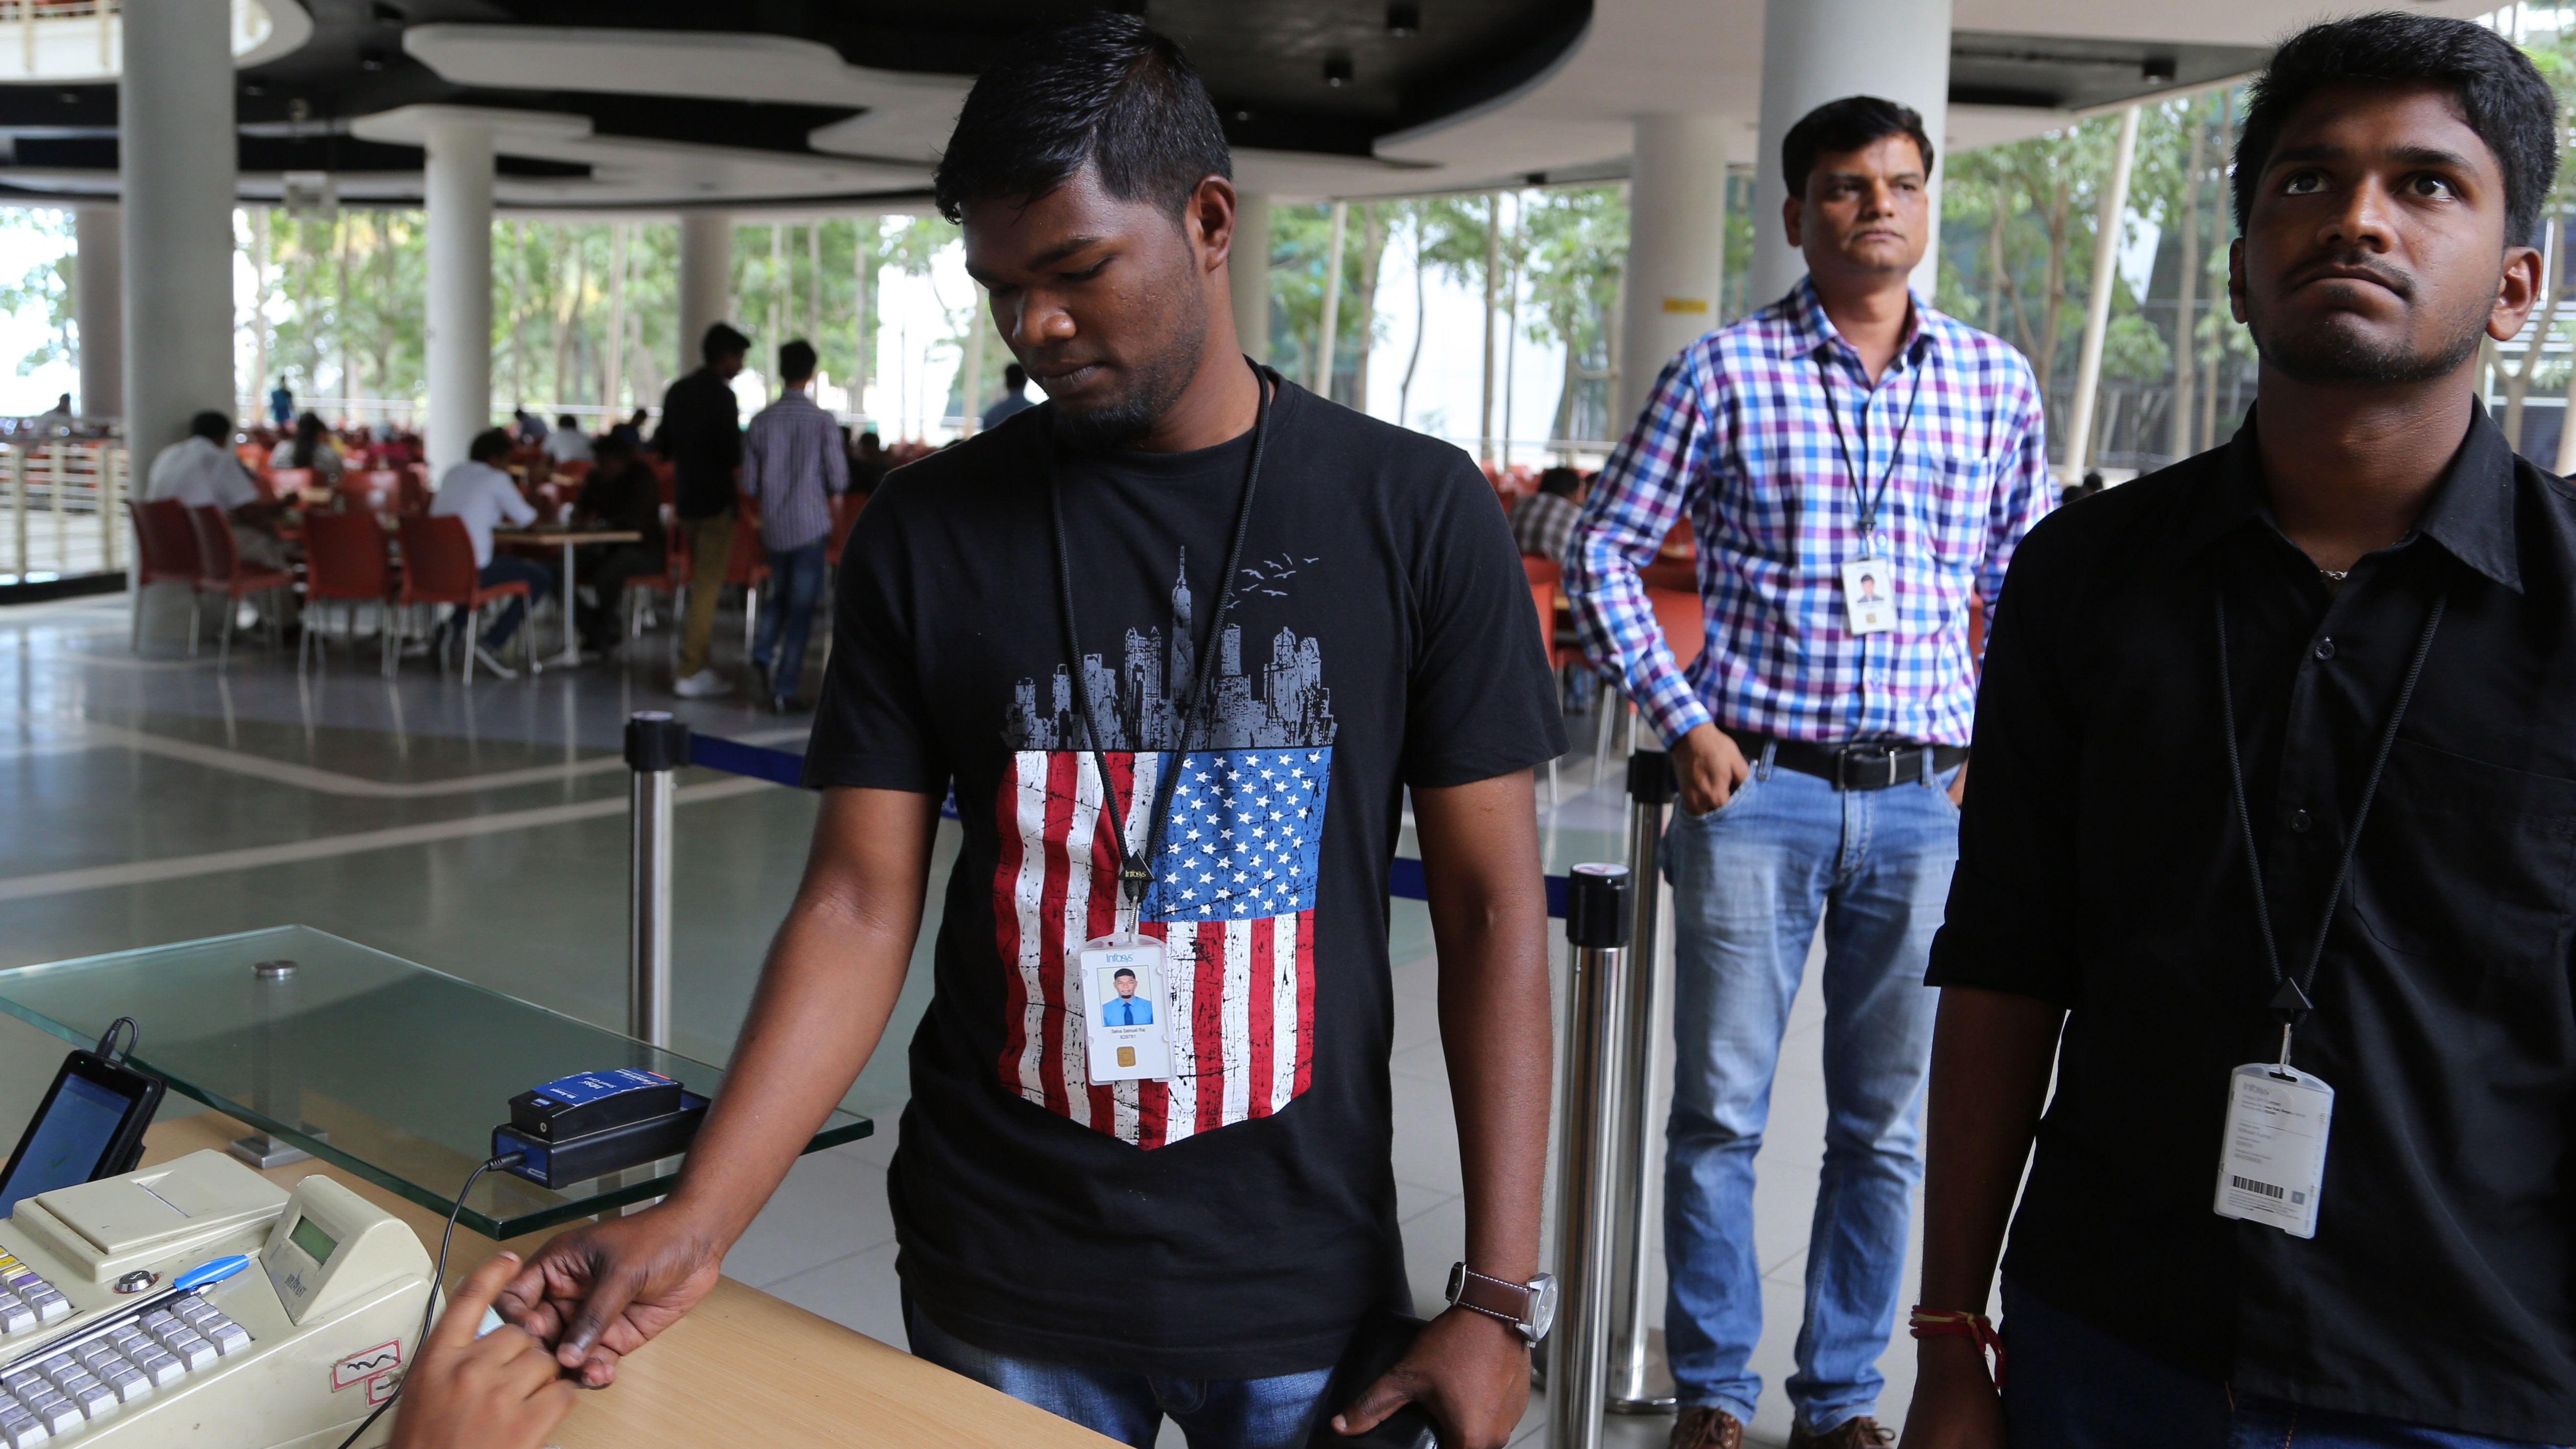 An Infosys employee sports a t-shirt featuring a U.S. flag as he buys coupons for lunch while others wait for their turn at company's headquarters in Bangalore, India, Friday, April 15, 2016. (AP Photo/Aijaz Rahi)